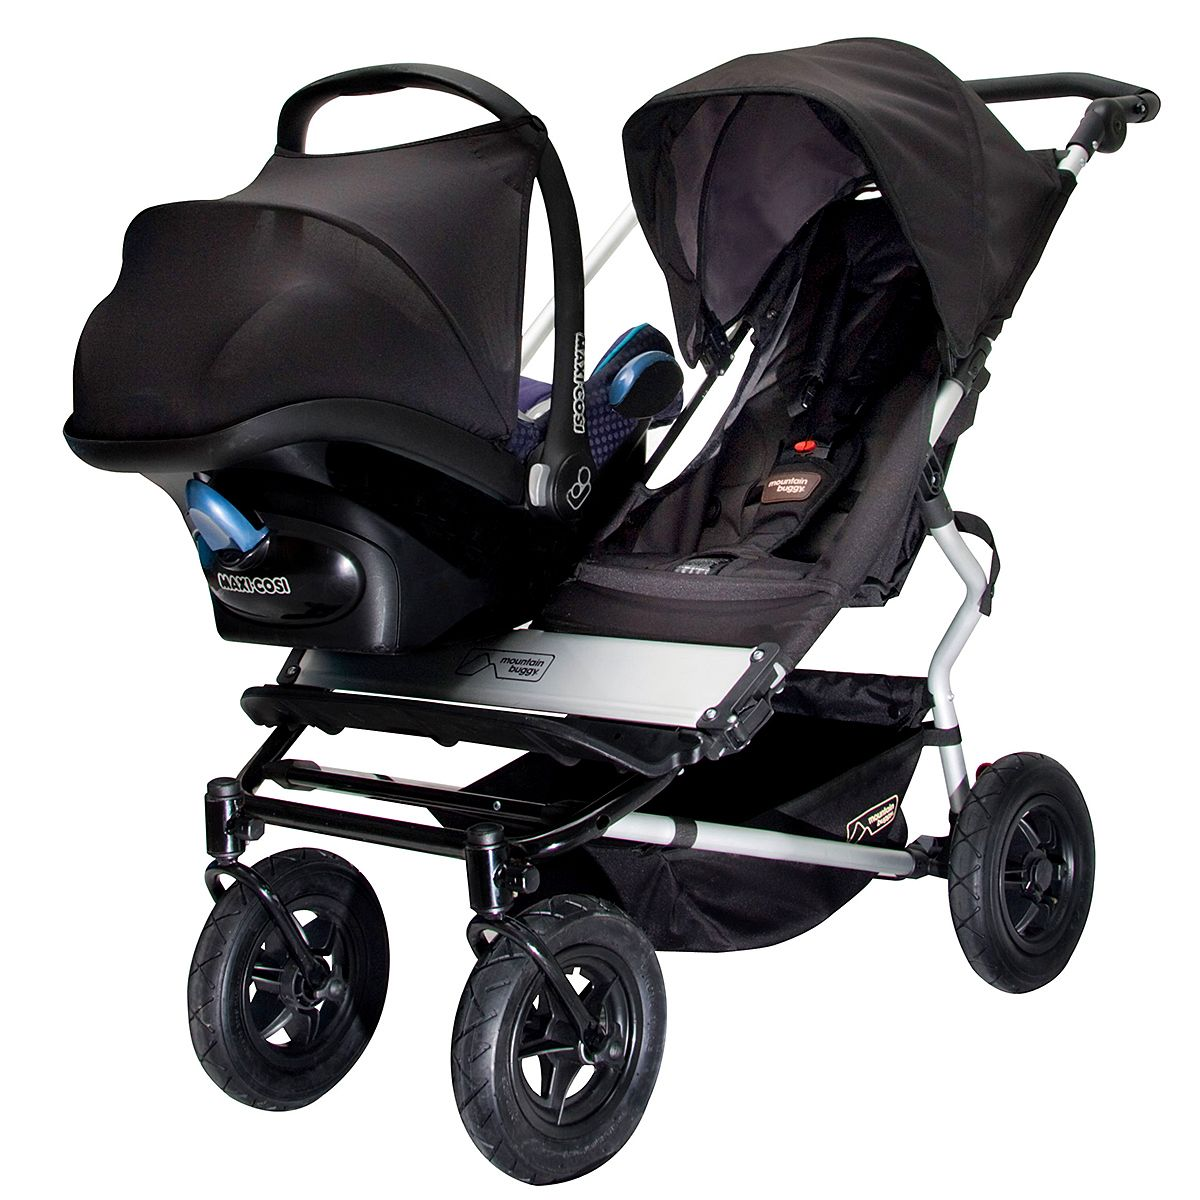 34+ Double stroller side by side for infant and toddler ideas